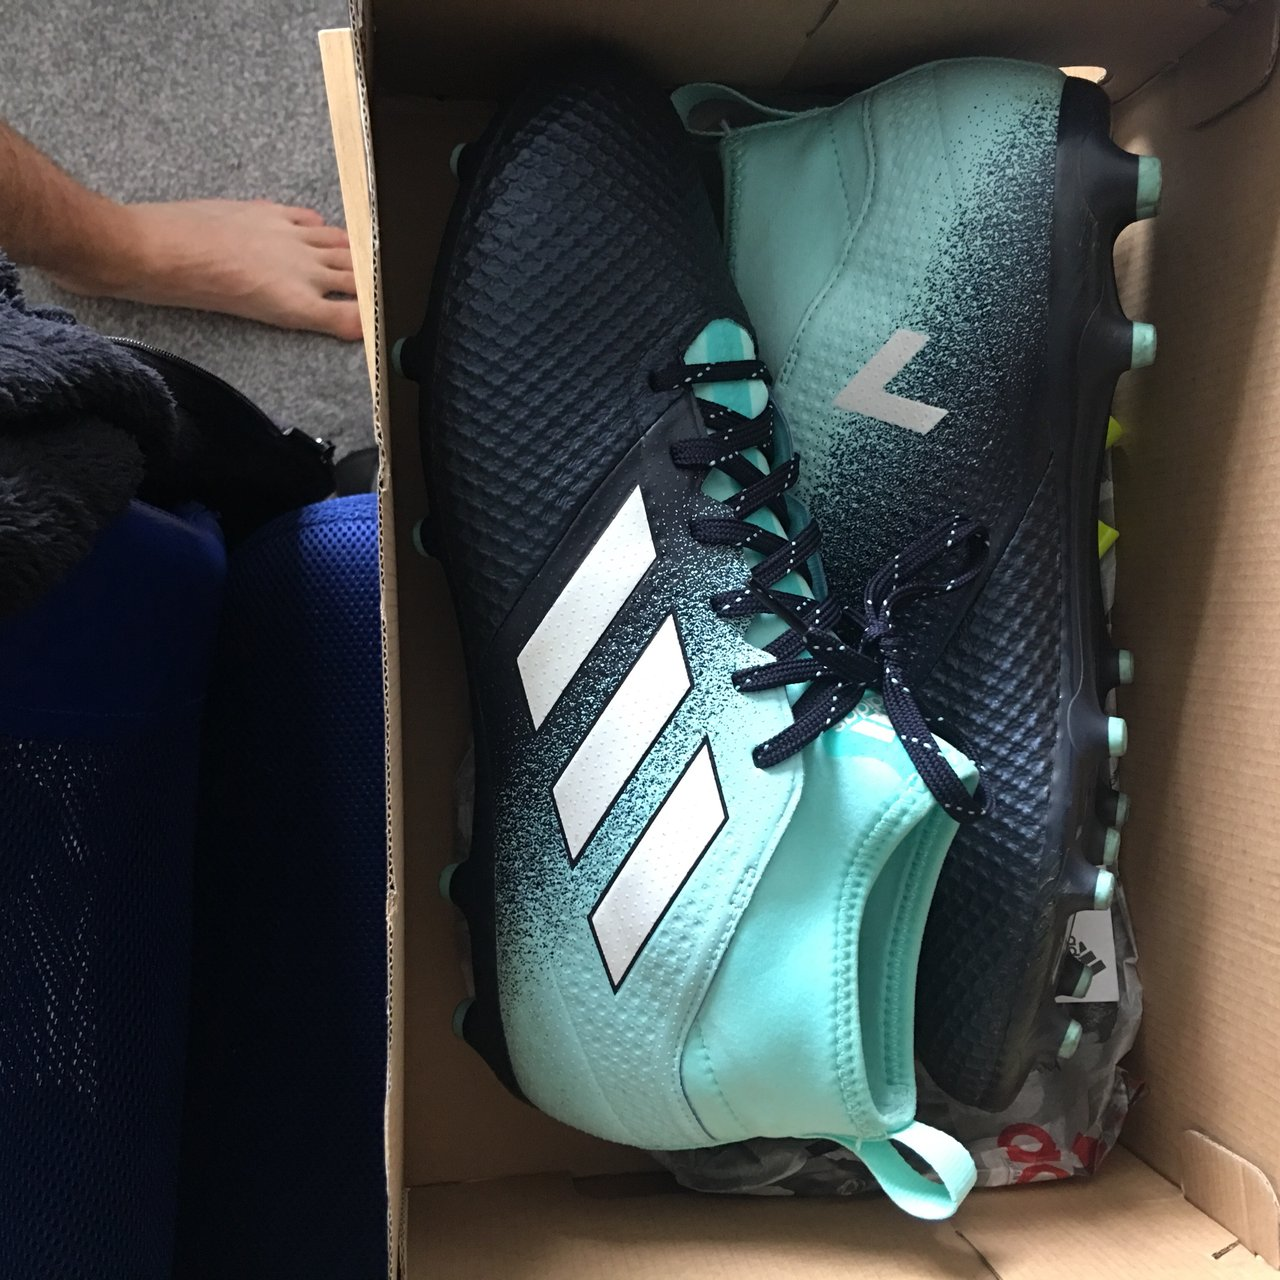 dce2d118ac3 Men's ADIDAS football boots 10/10 continues